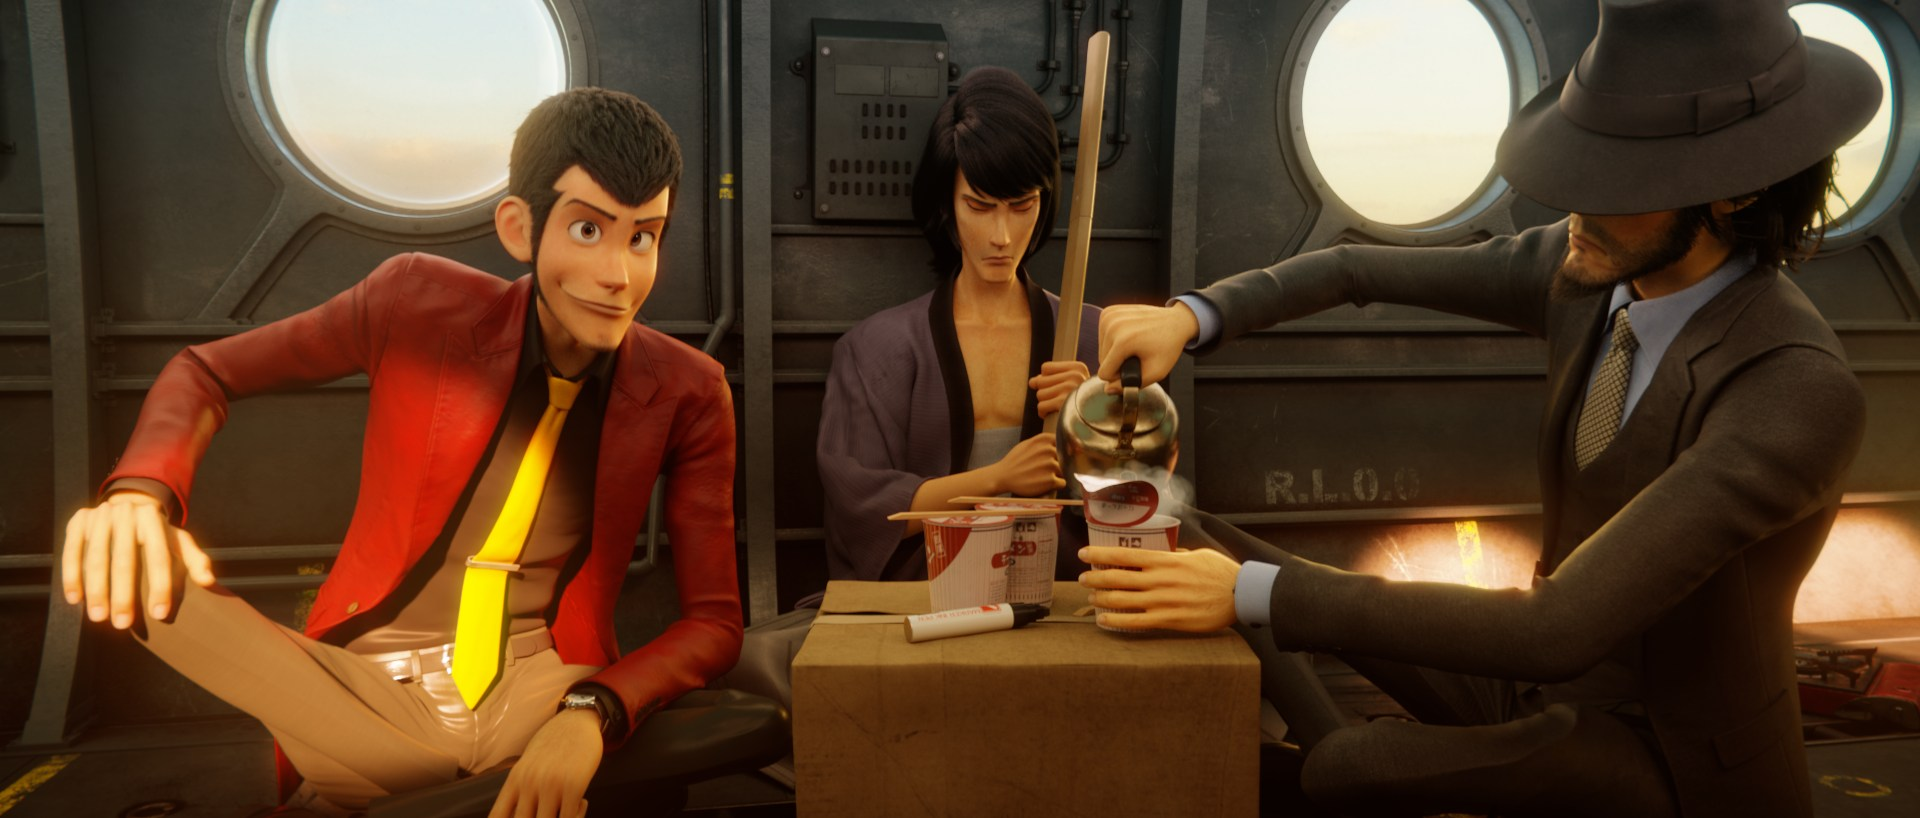 """Lupin the 3rd: The First"" from GKids"